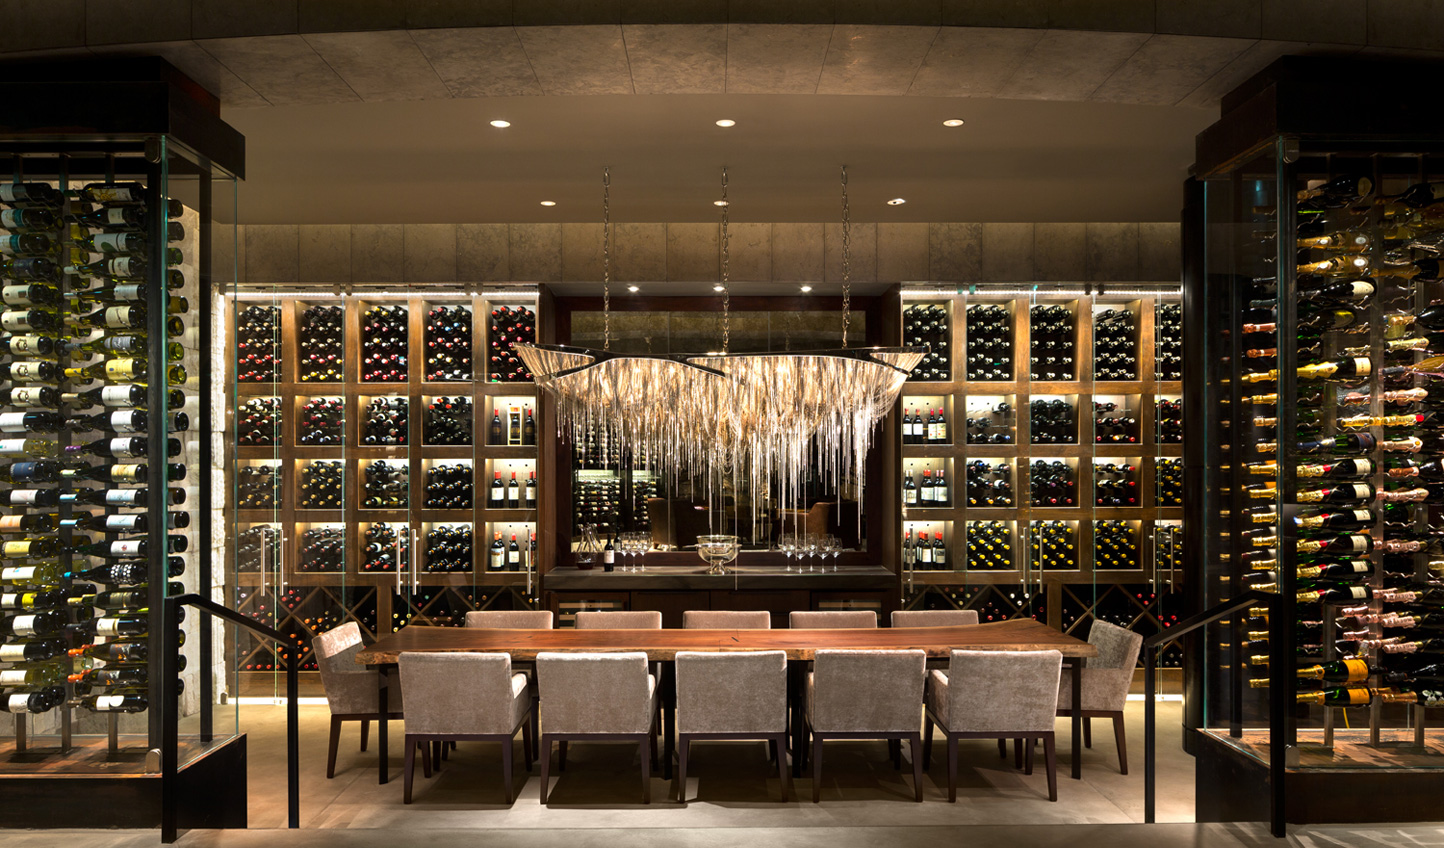 La Cava is an intimate and exclusive wine cellar featuring wall-to-wall cabinets housing 1,000 premium labels